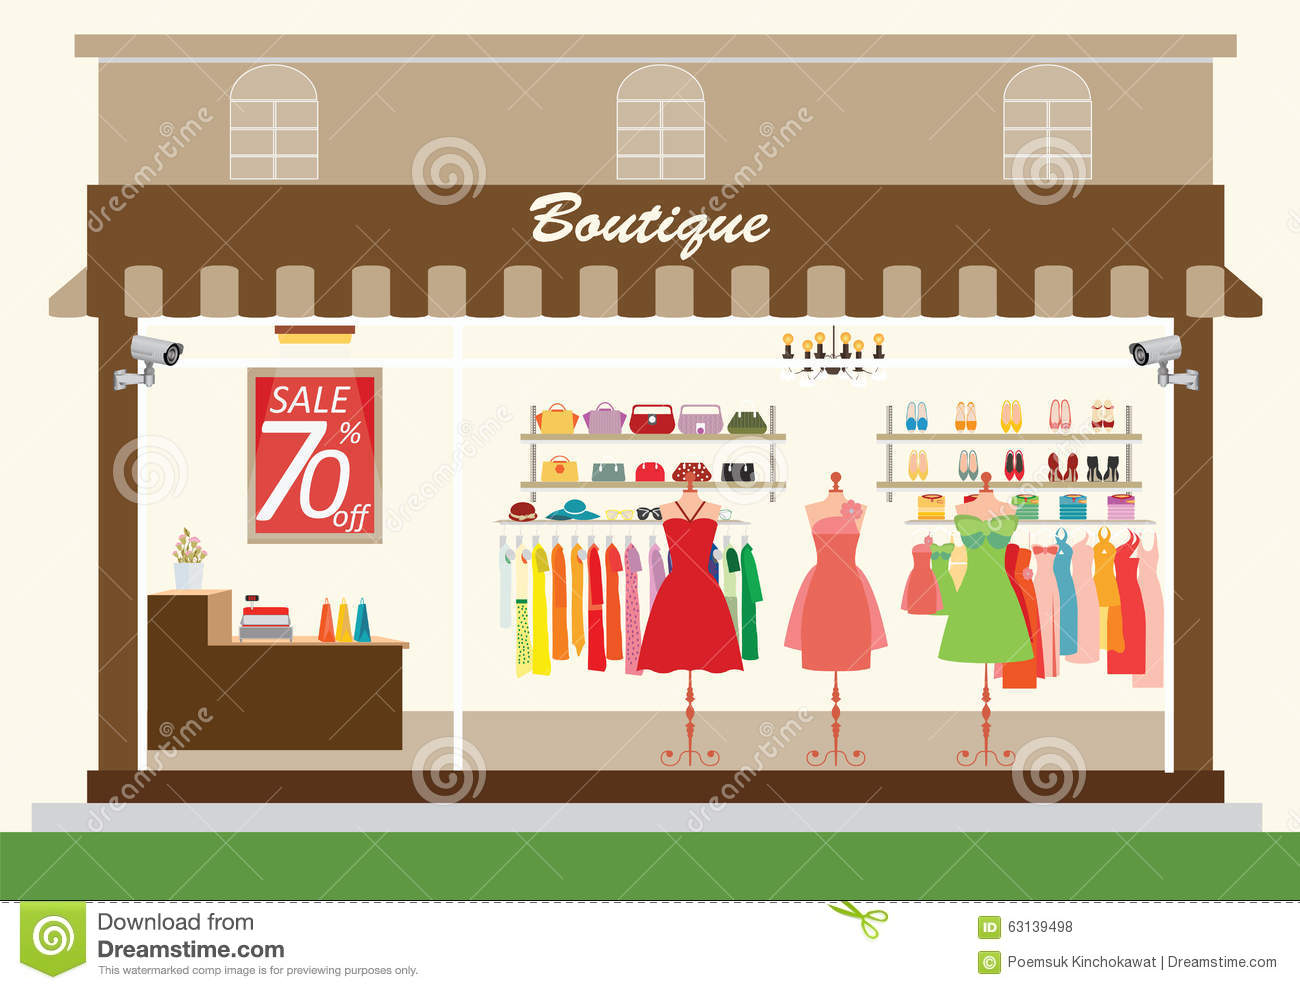 http://thumbs.dreamstime.com/z/clothing-store-building-interior-products-shelves-shopping-fashion-bags-shoes-accessories-sale-shopping-vector-63139498.jpg